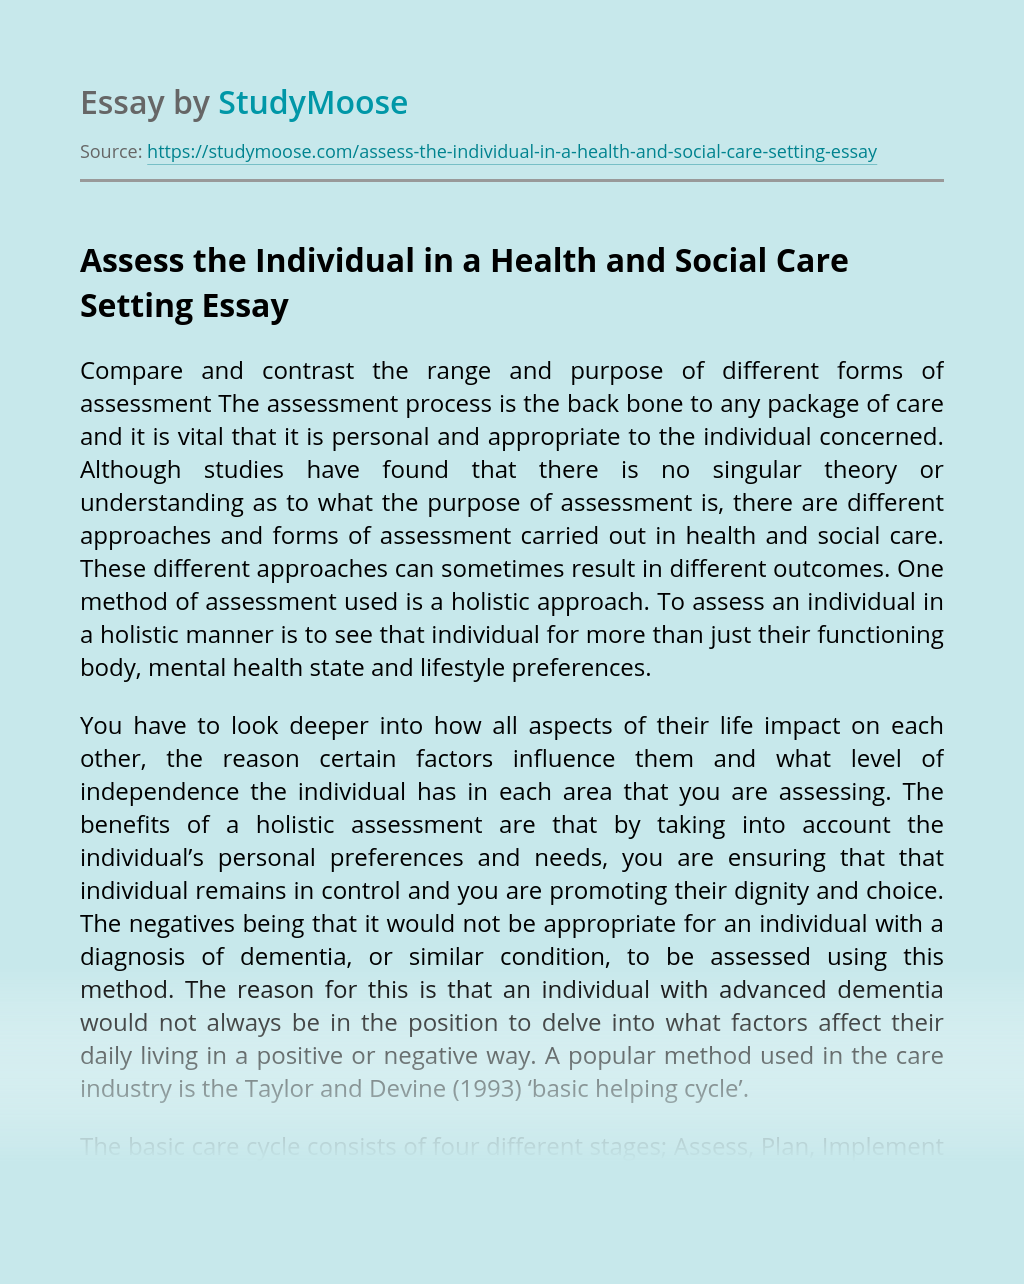 Assess the Individual in a Health and Social Care Setting